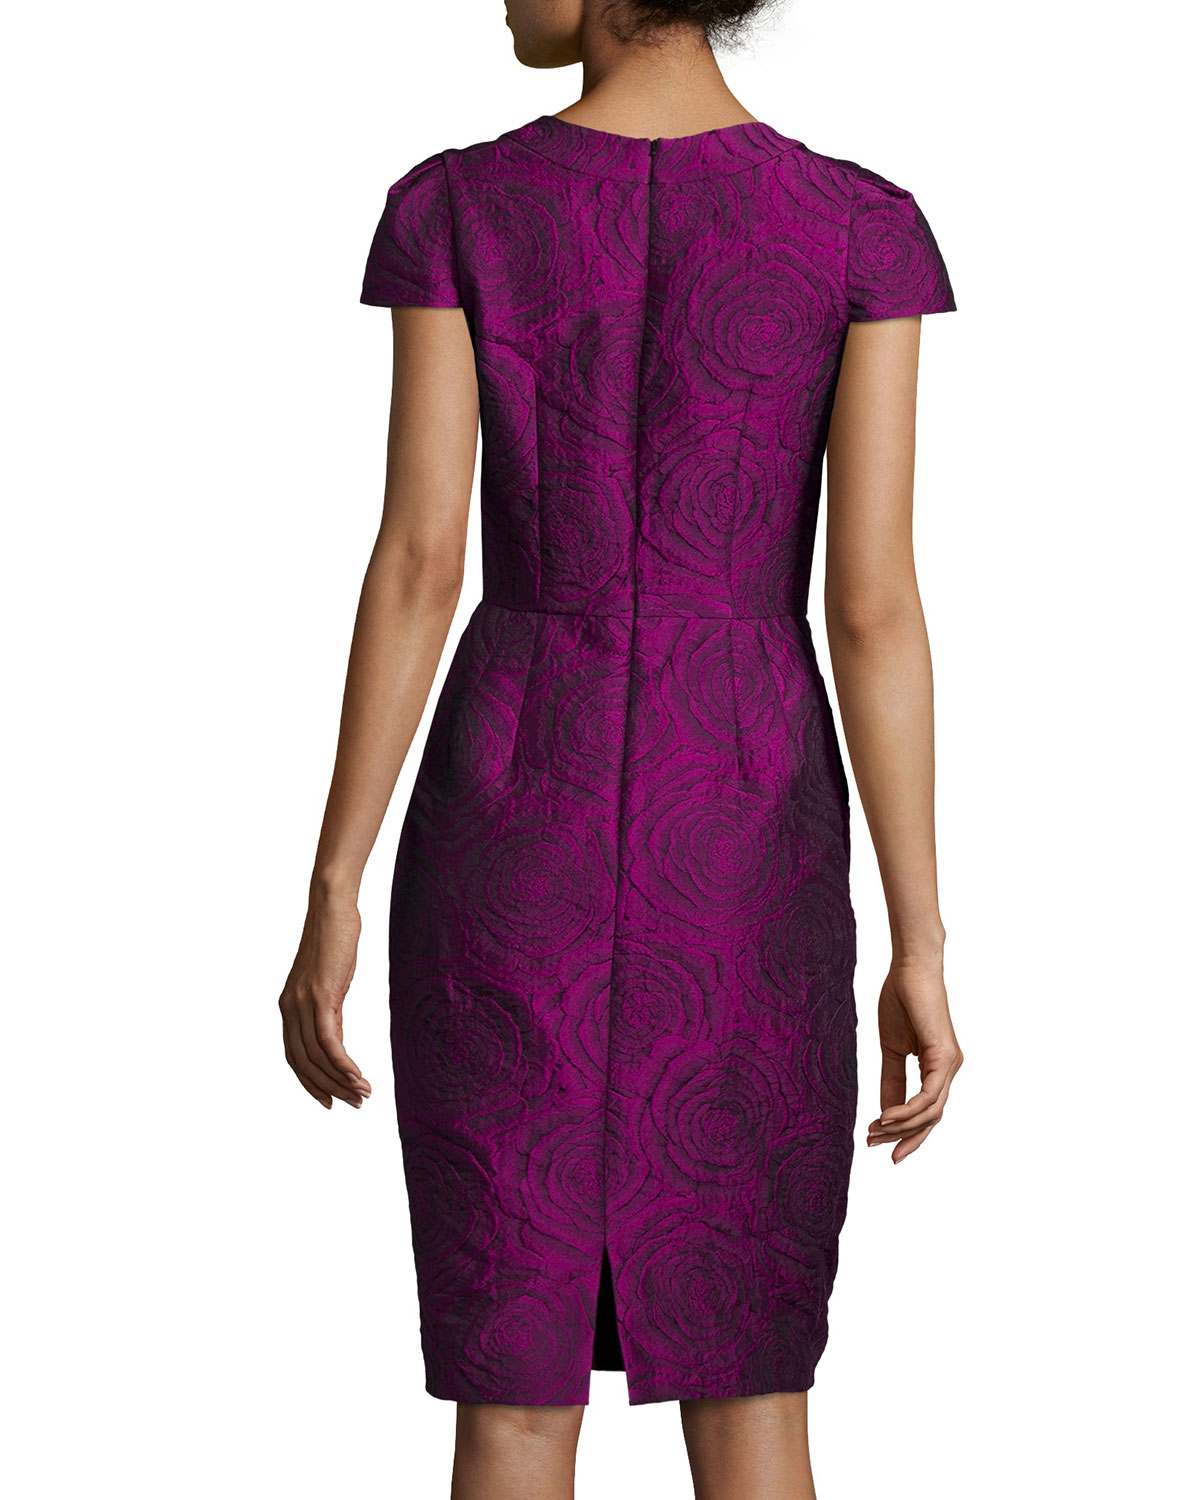 Carmen marc valvo Cap-Sleeve Metallic Cocktail Dress in Purple | Lyst